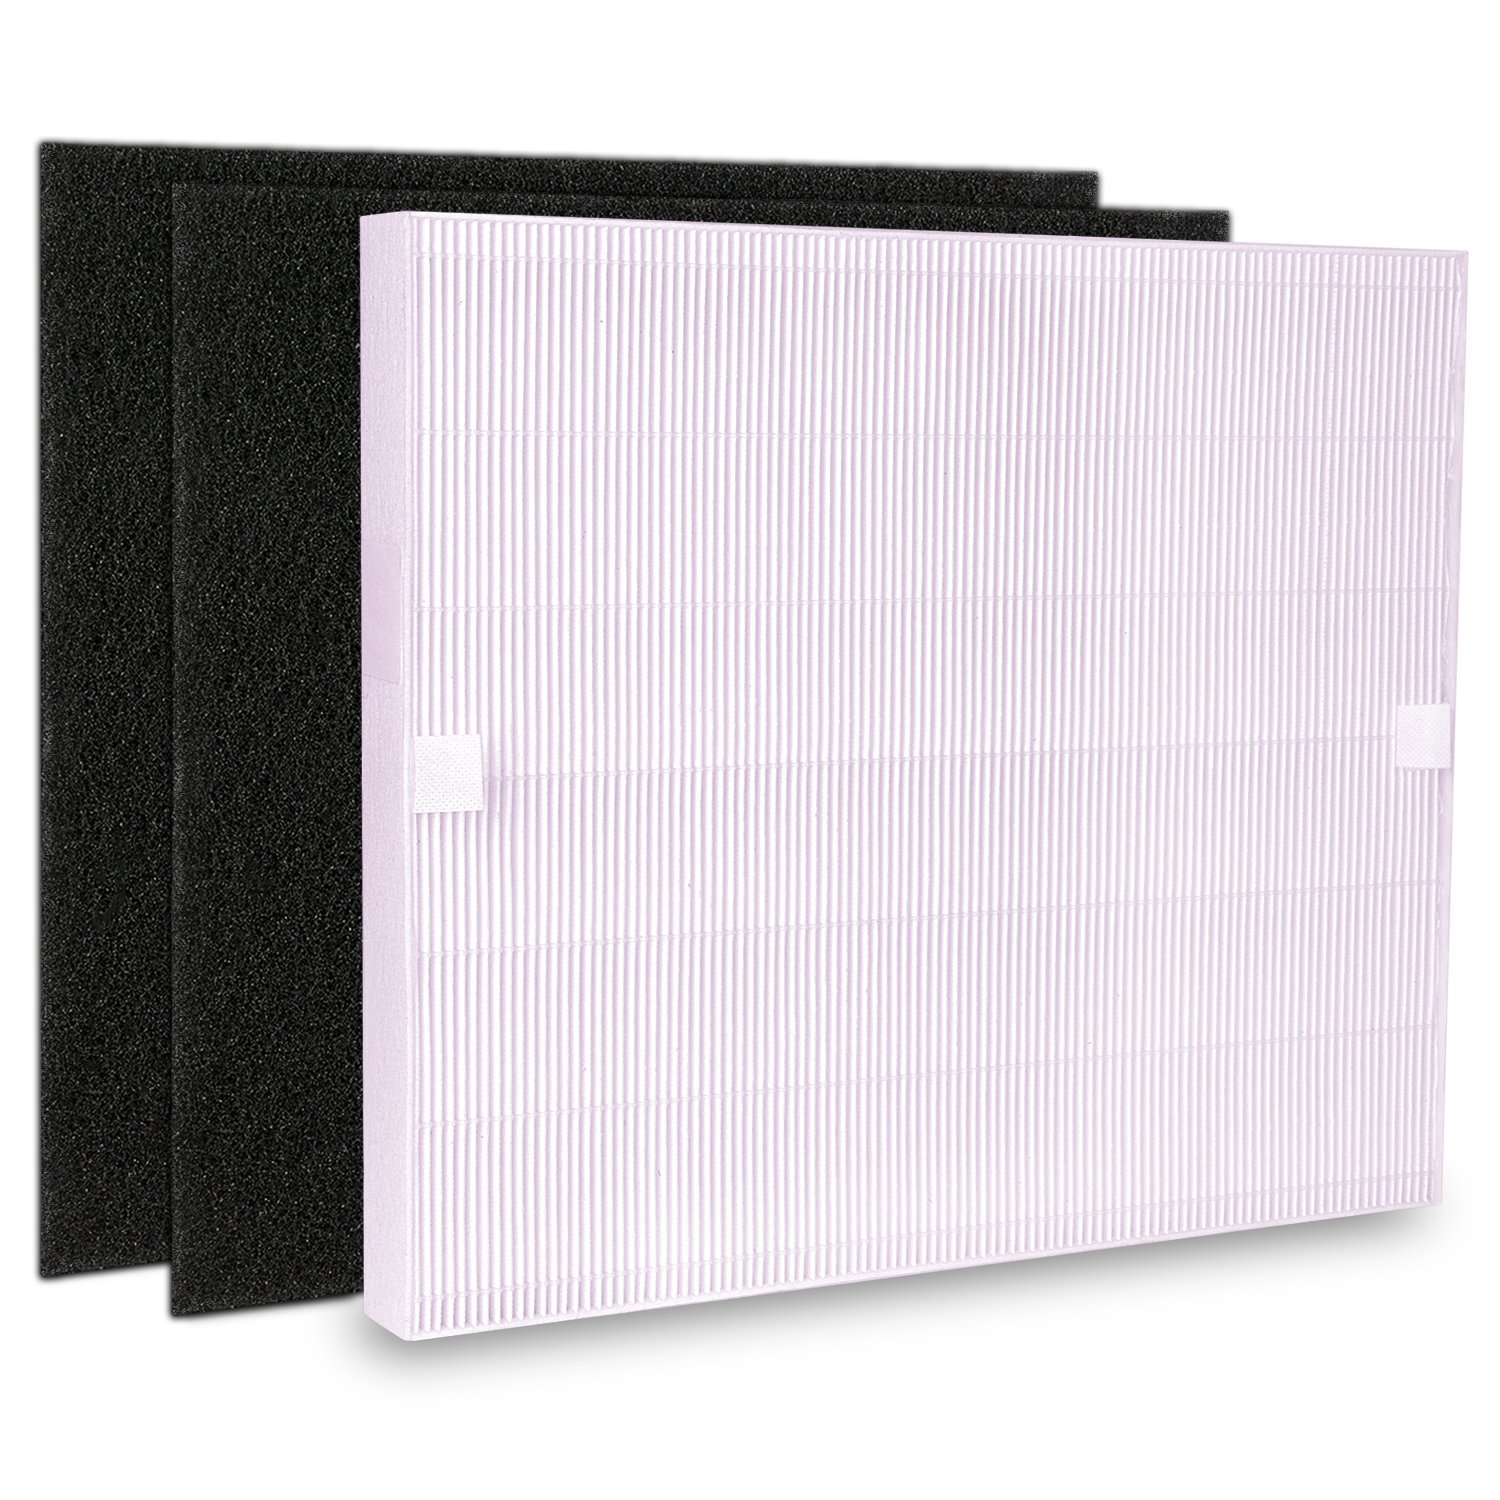 True HEPA Replacement Filter for Coway AP1512HH Air Purifiers 3304899 with 2 Carbon Filters Cabiclean ap 1512